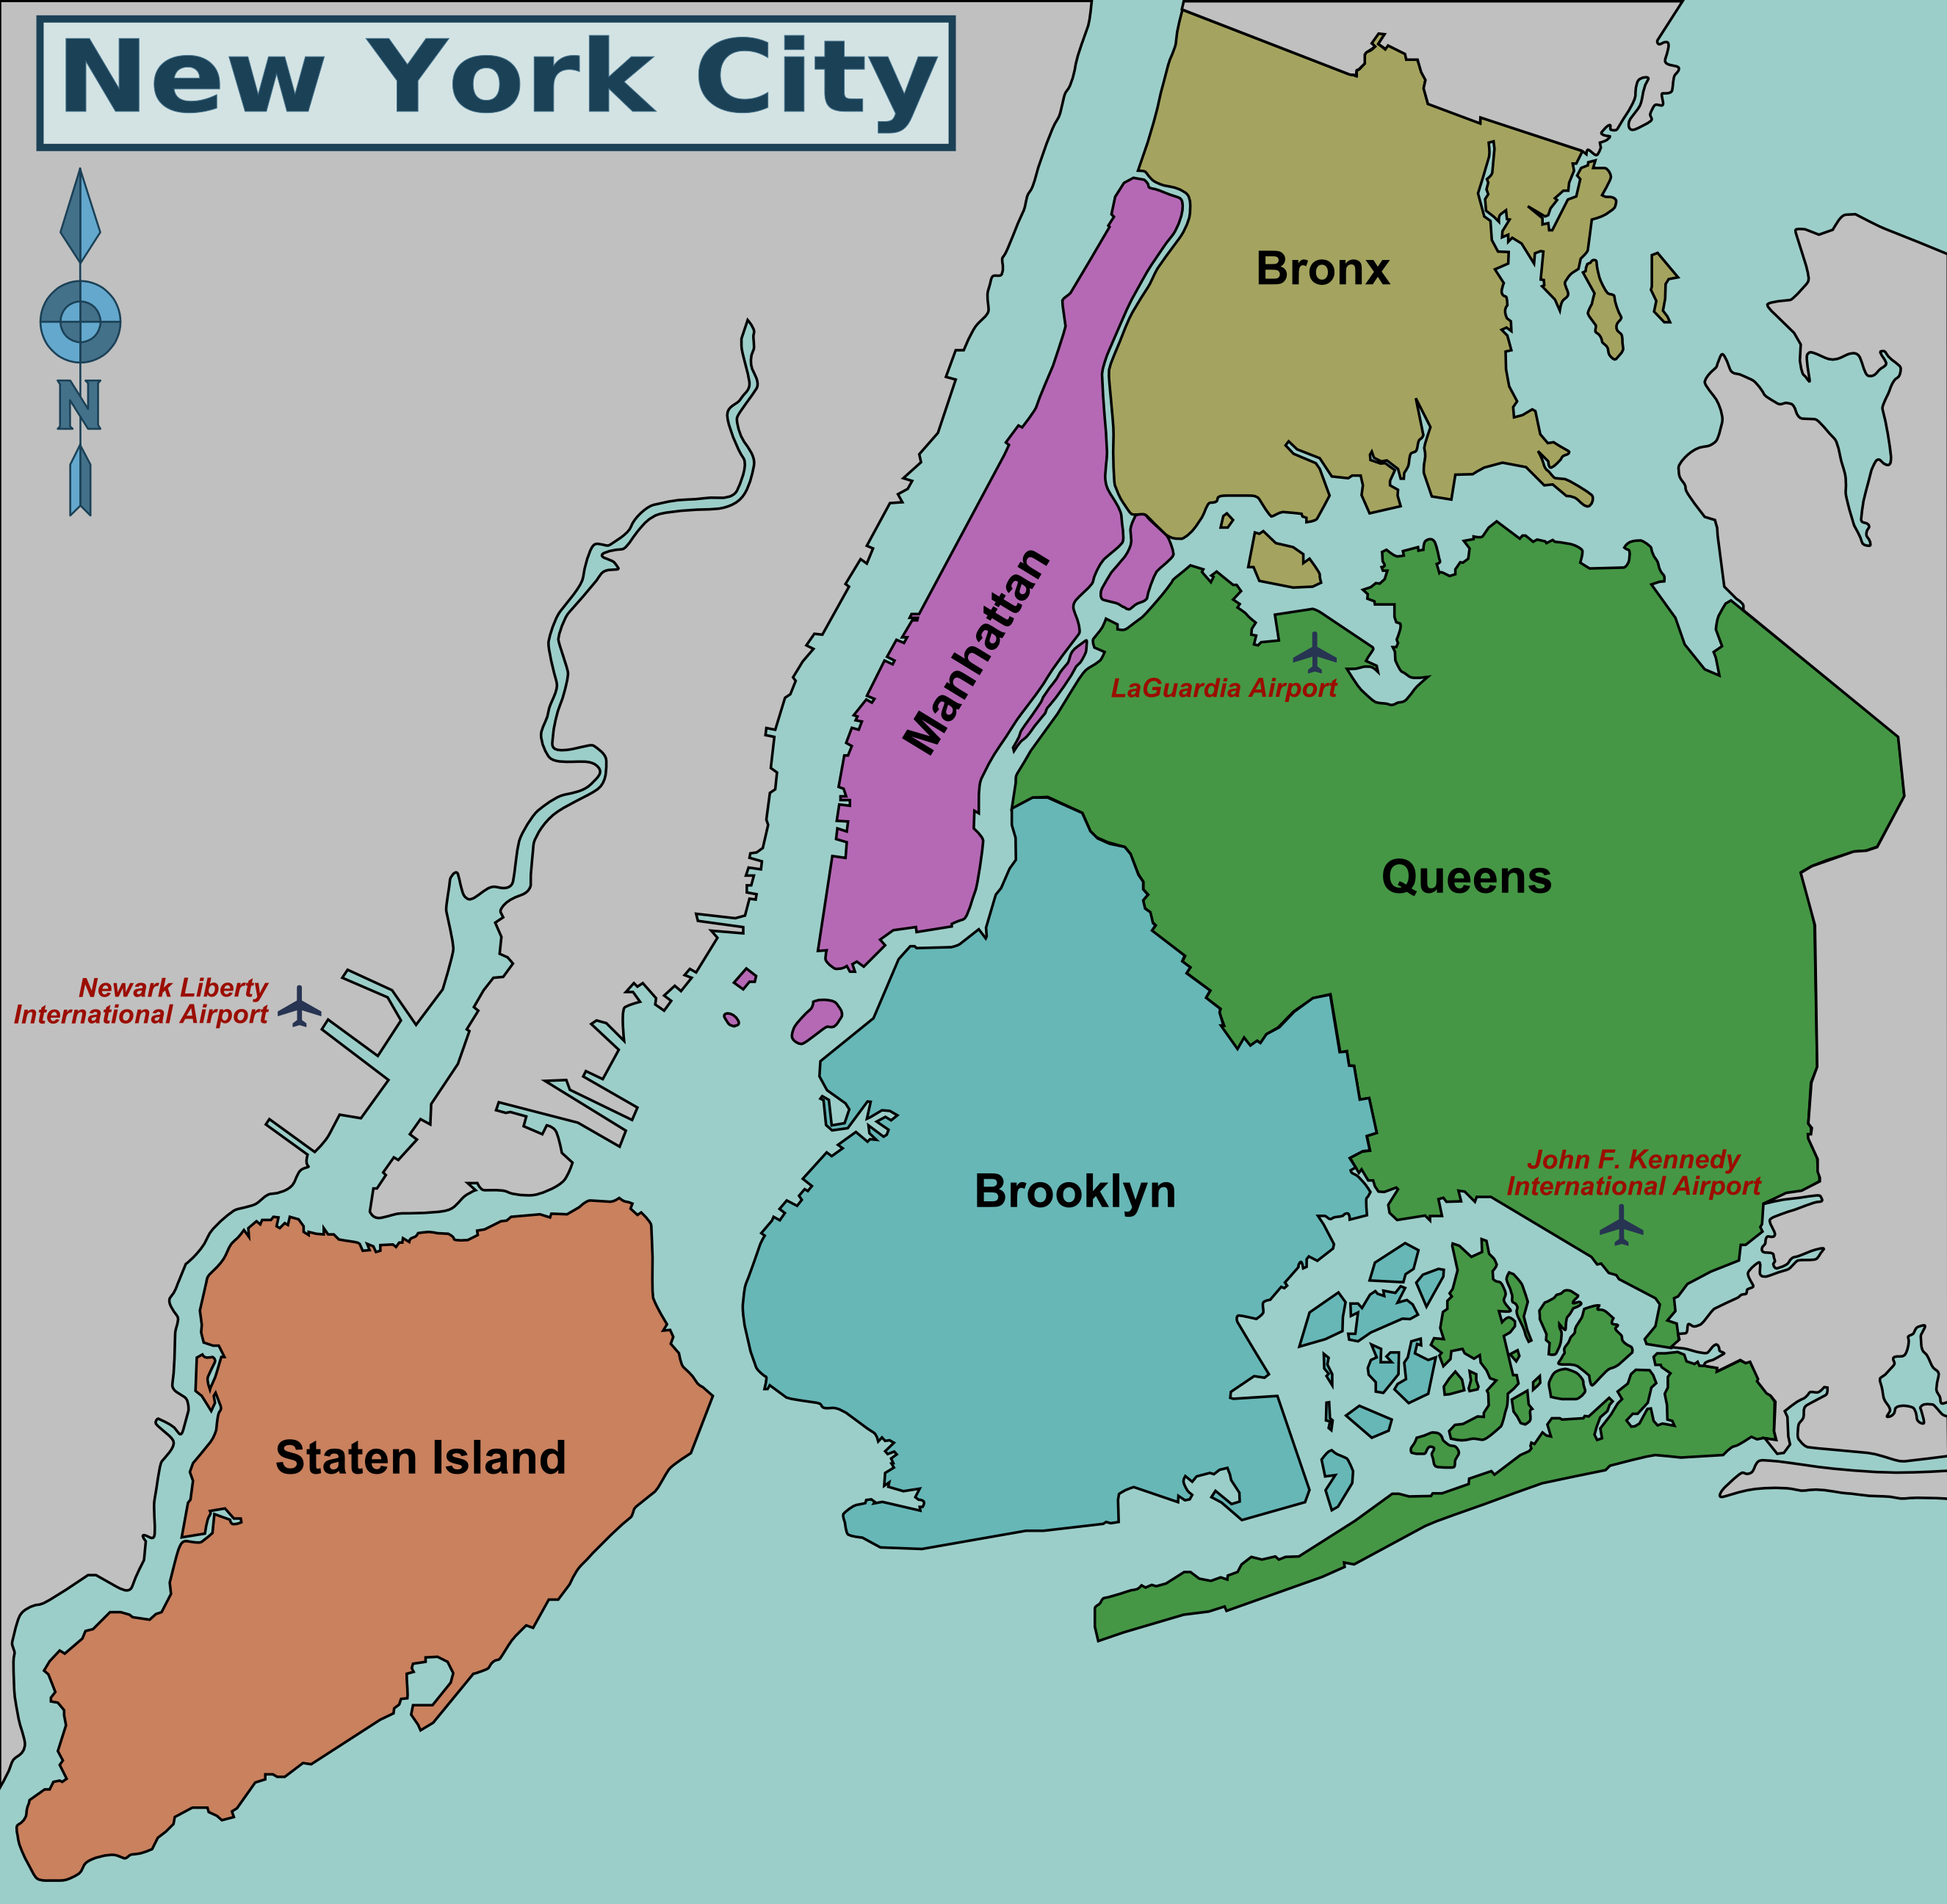 map of brooklyn and queens Great Runs In New York City S Boroughs By Karin Emanuelson map of brooklyn and queens